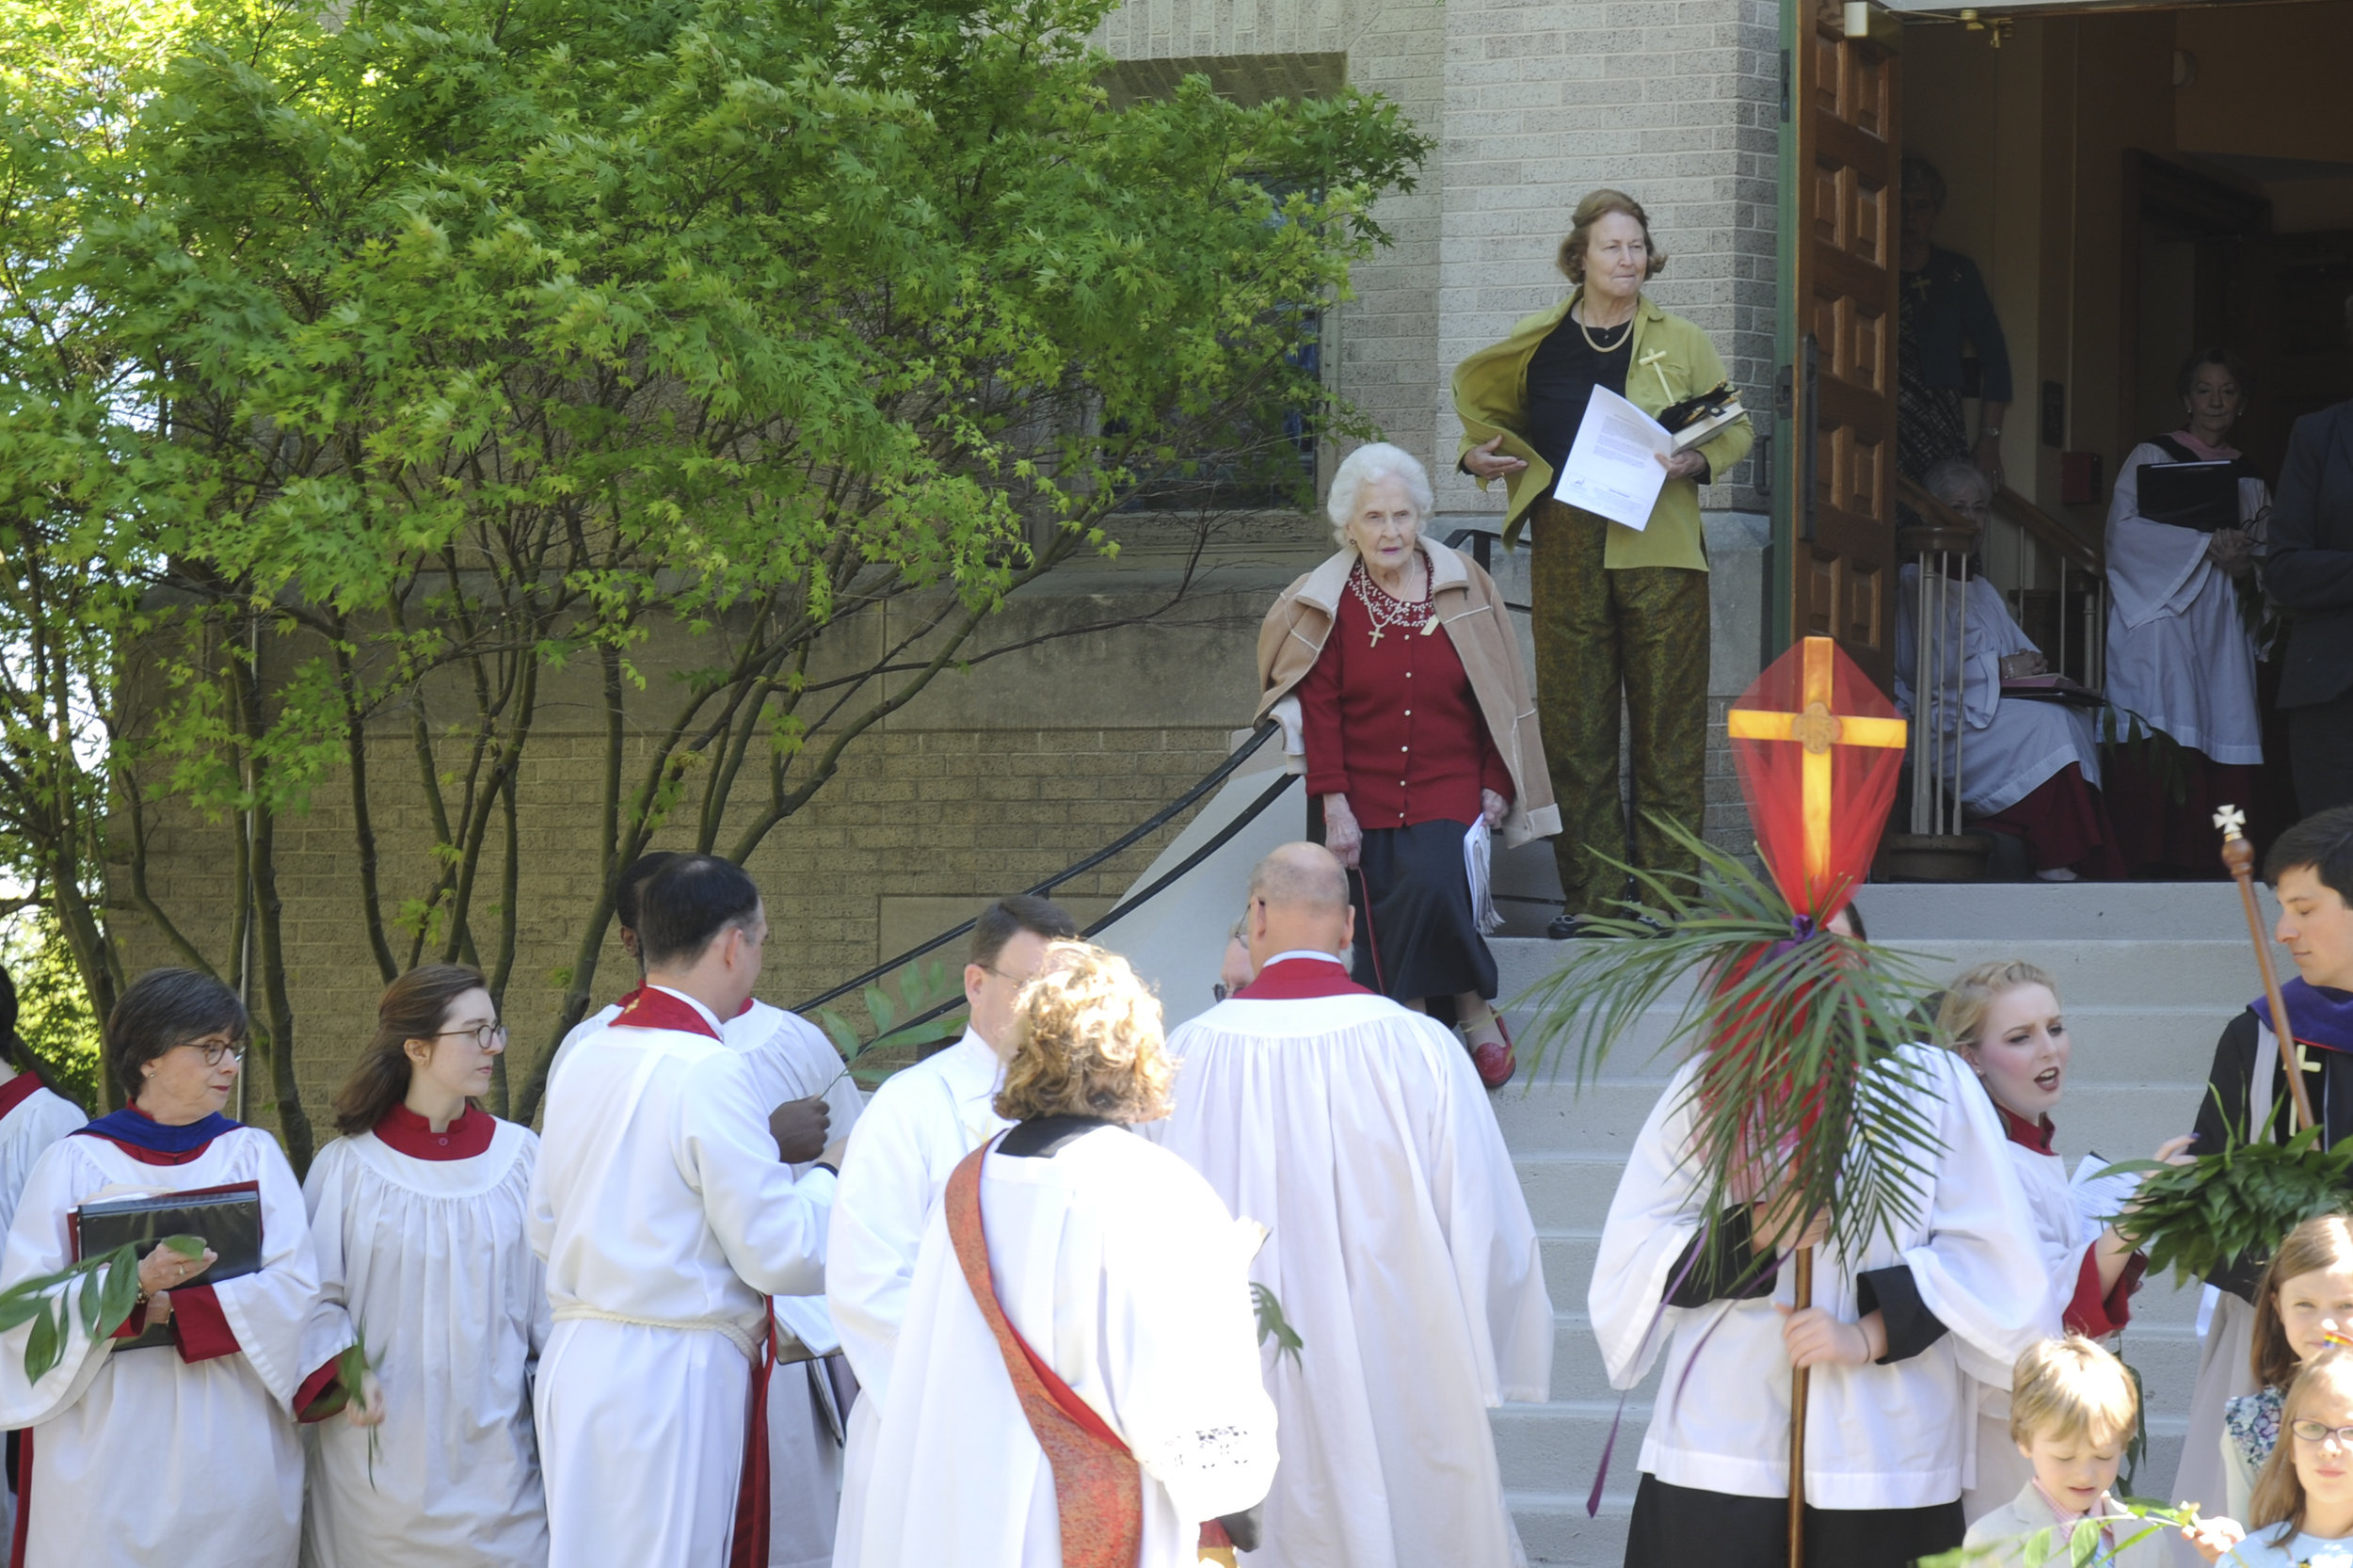 Palm Sunday Procession - April 9, 2017